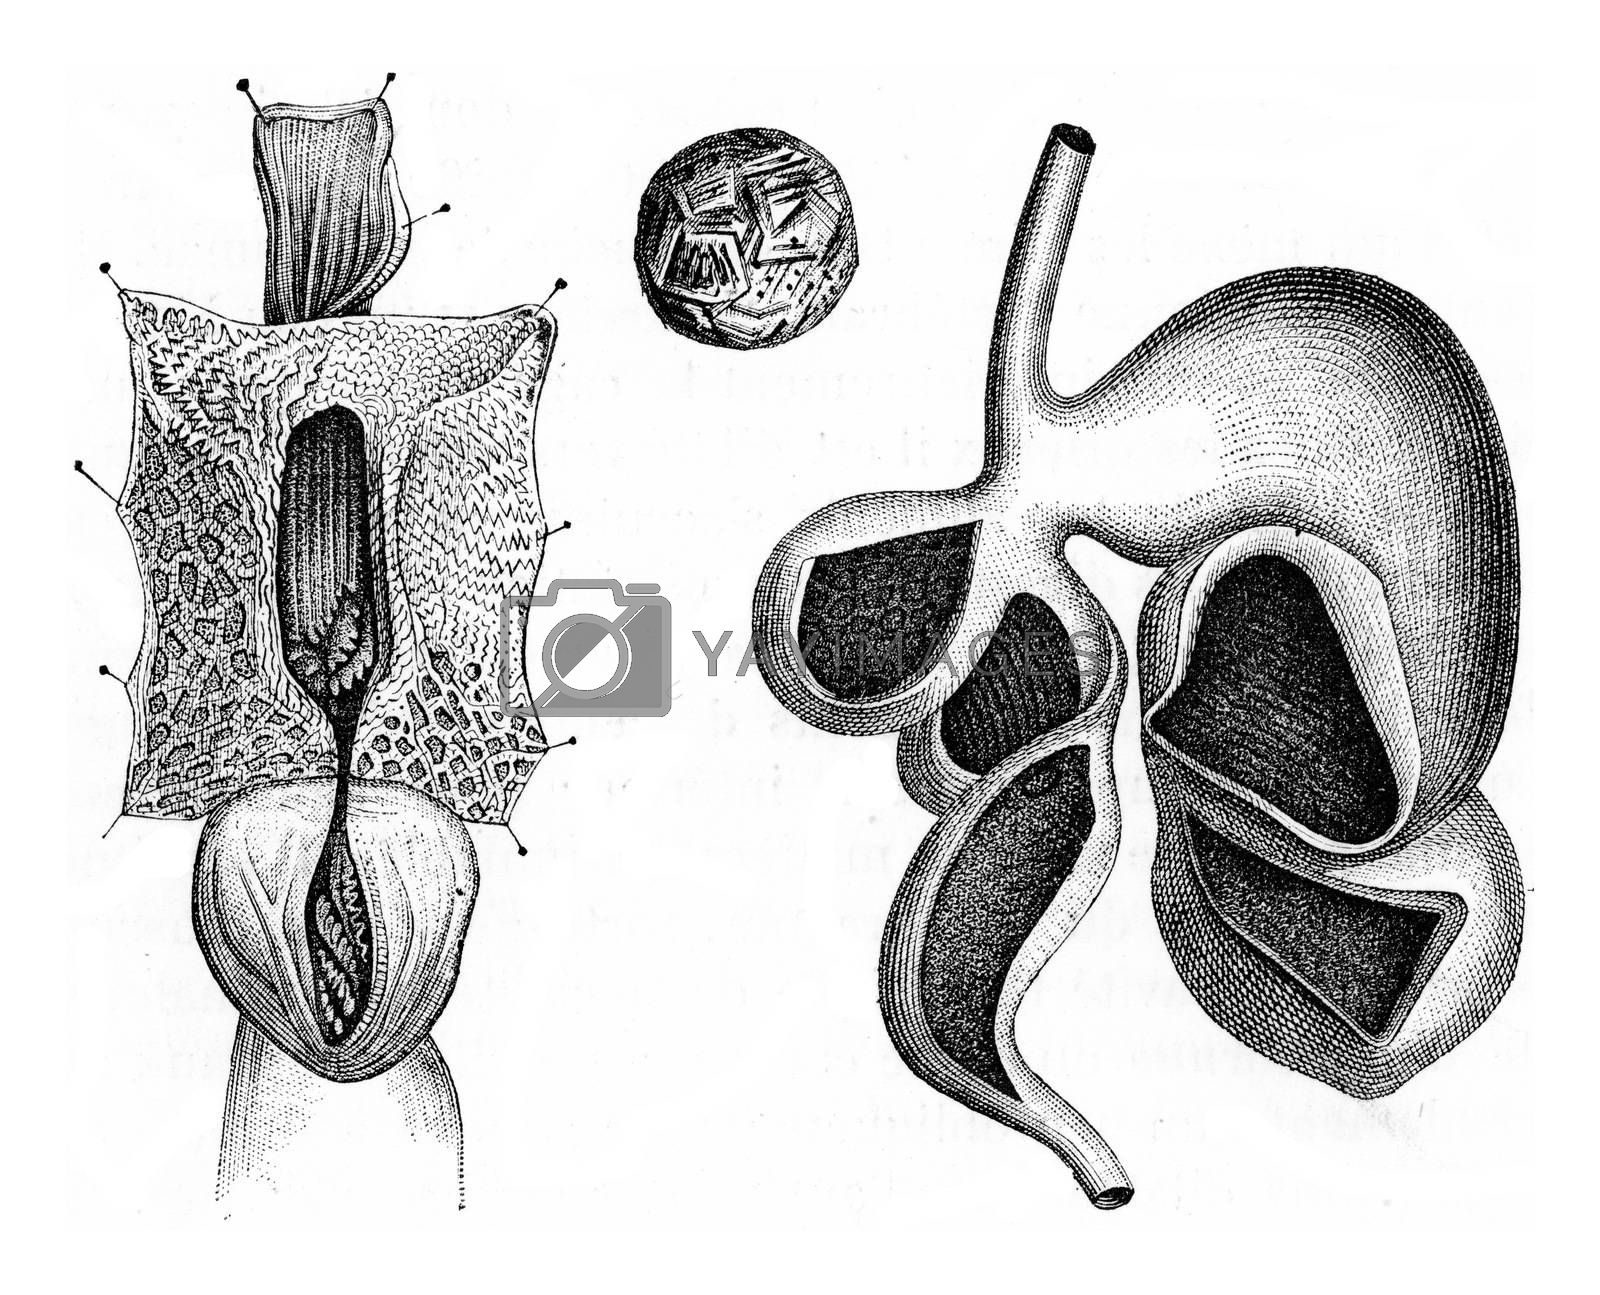 Stomach of ruminant, vintage engraved illustration. Zoology Elements from Paul Gervais.